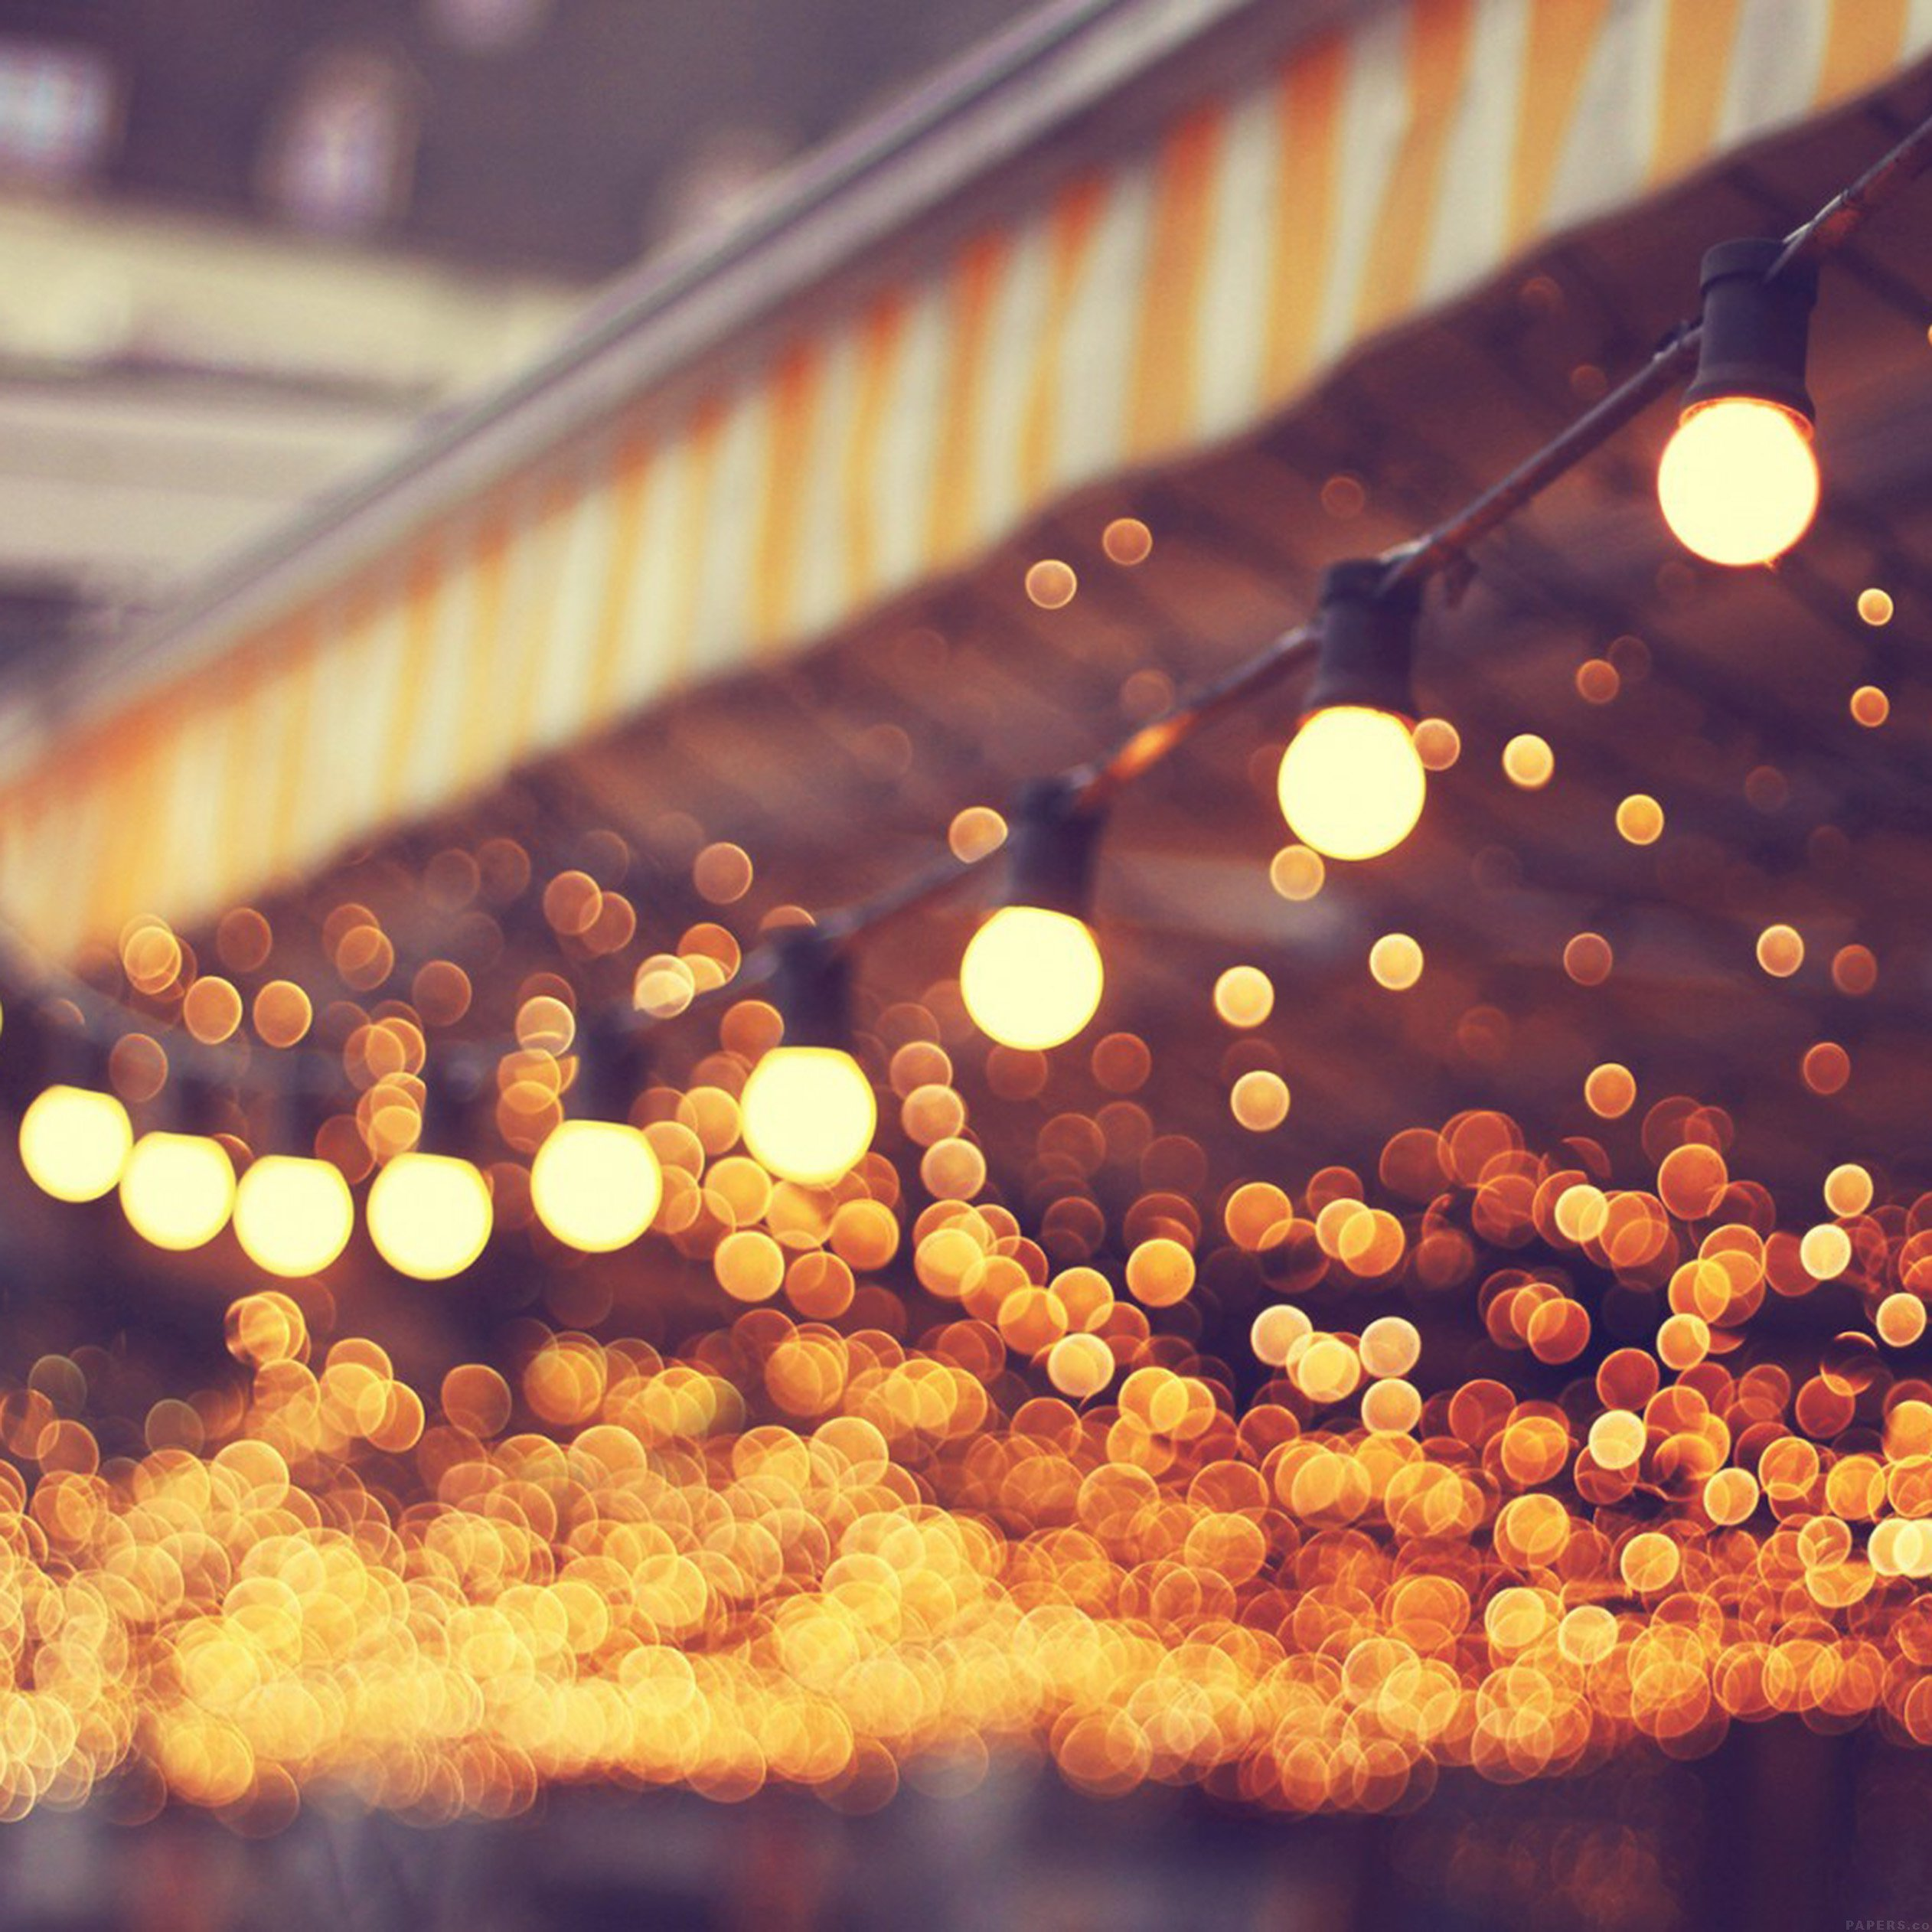 Bokeh Wallpapers For Iphone And Ipad